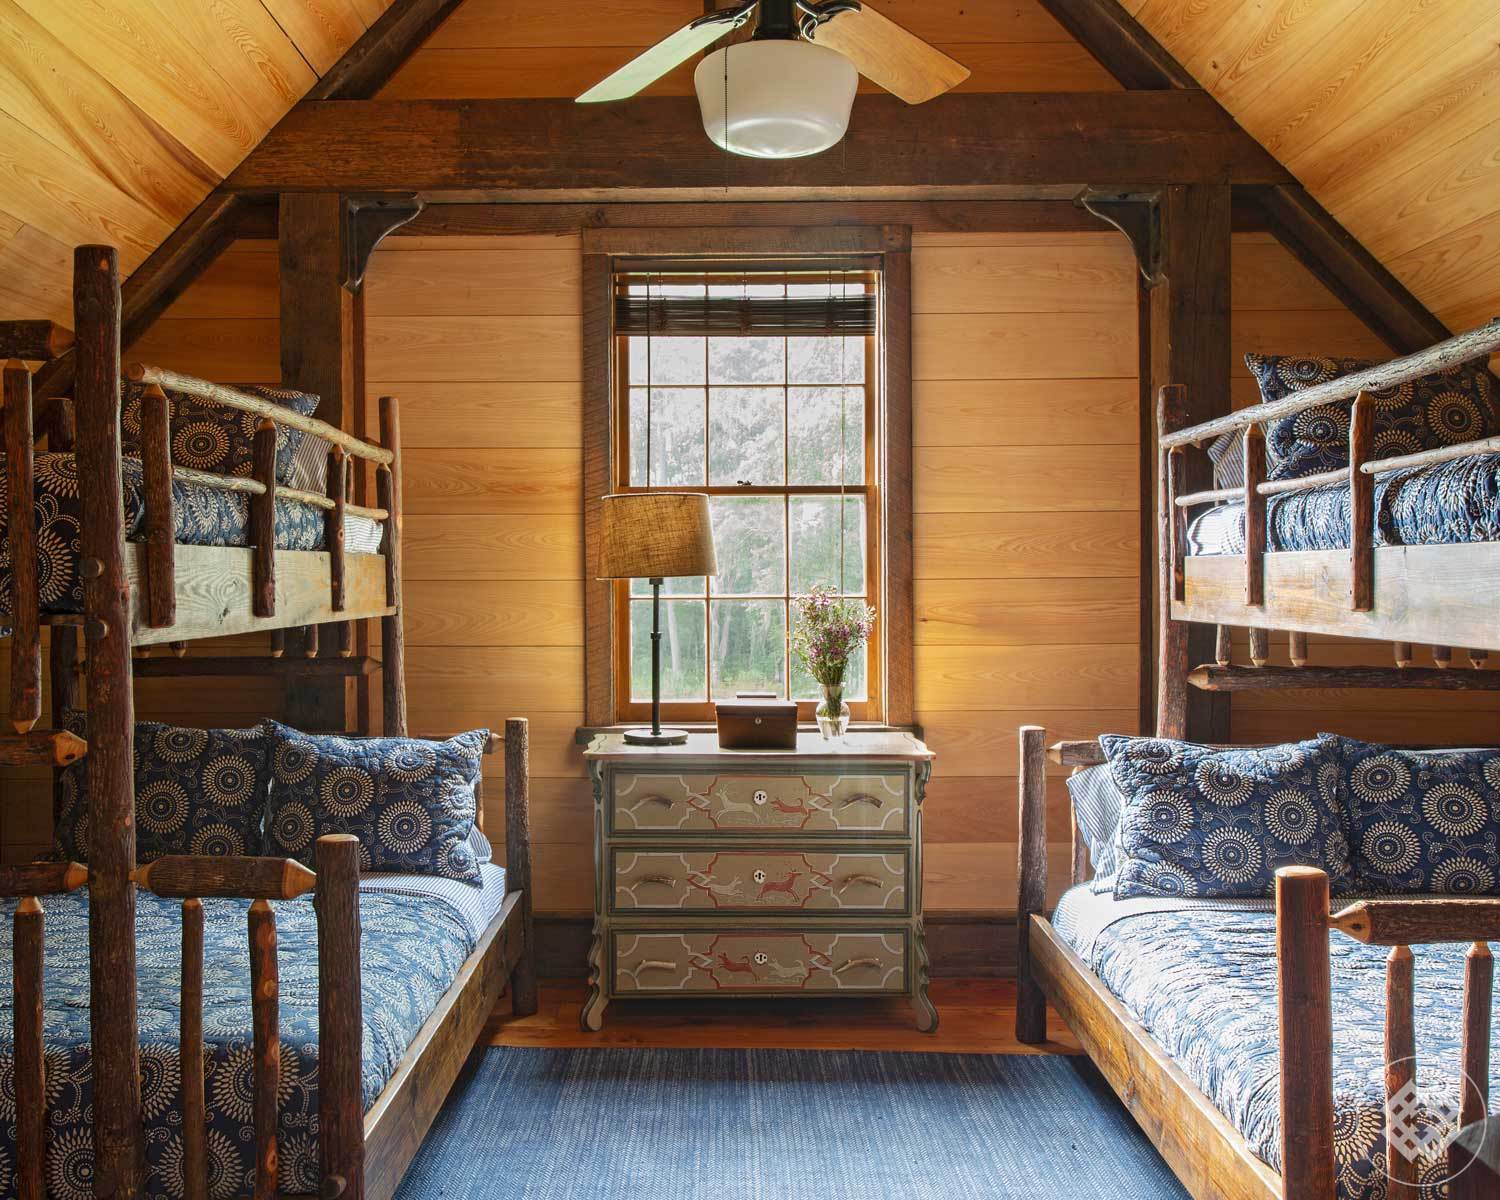 mfh-bunk-room-twig-beds-vintage-chest.jpg